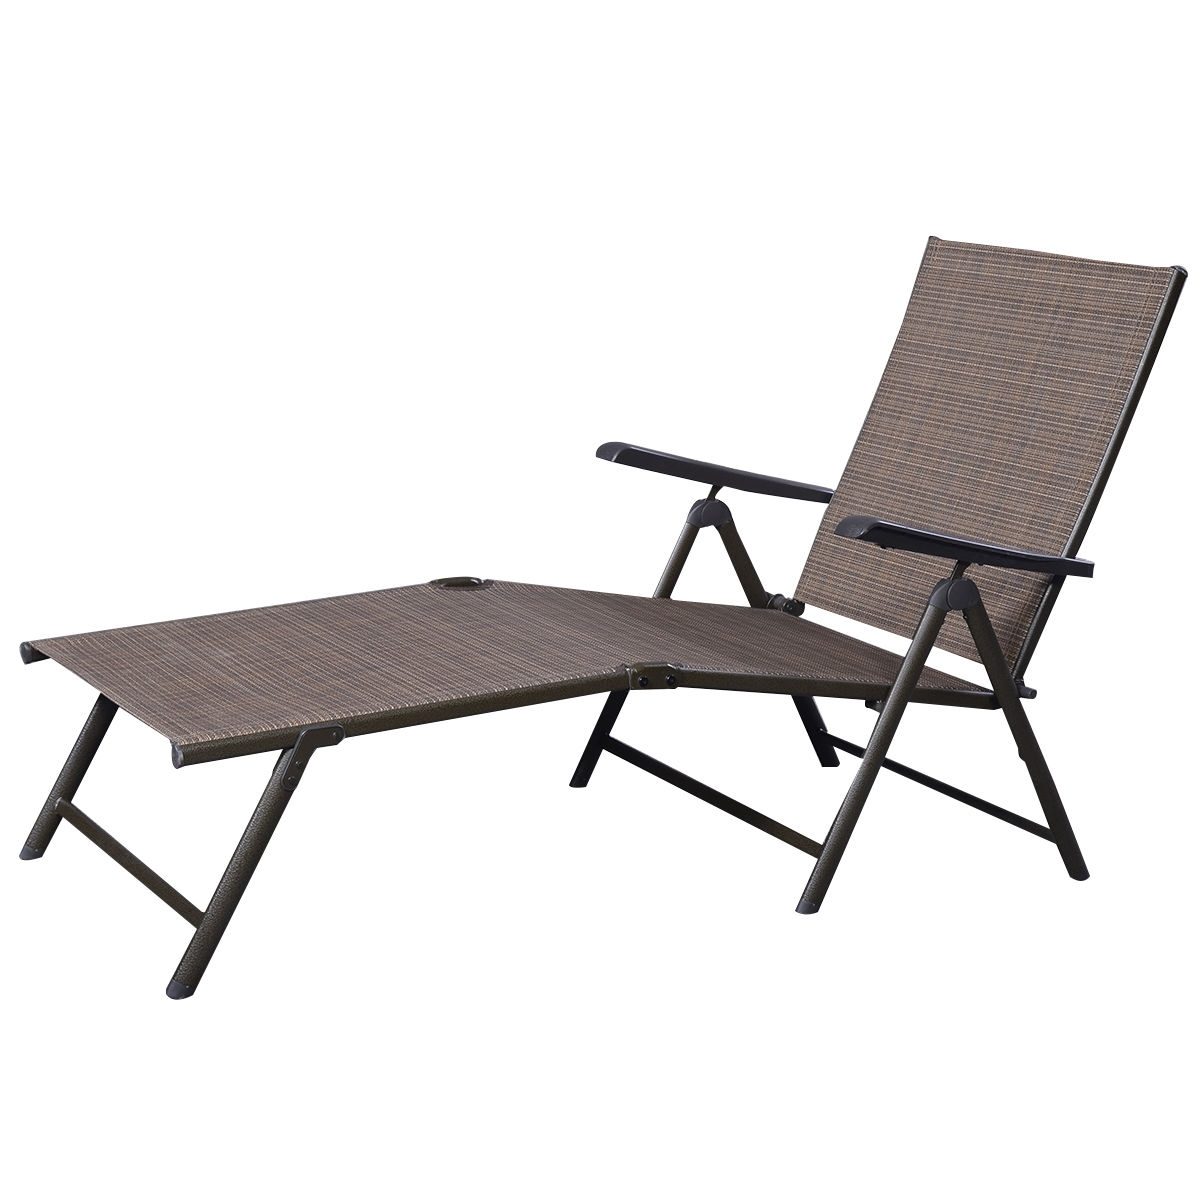 Outdoor Adjustable Chaise Lounge Chair – Sunloungers – Outdoor With Well Known Pool Chaise Lounge Chairs (View 7 of 15)